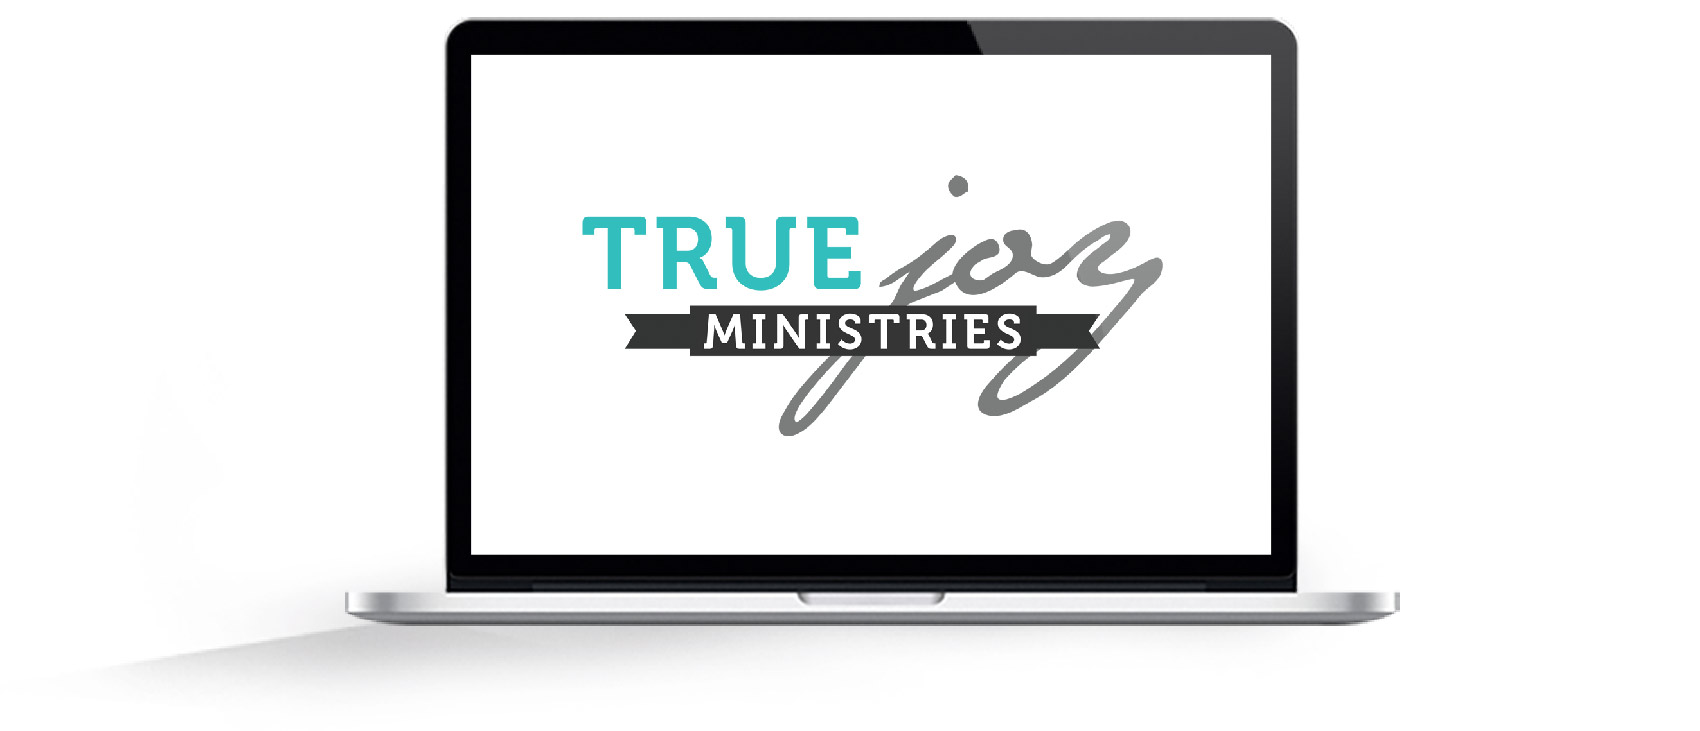 true joy ministries logo mockup